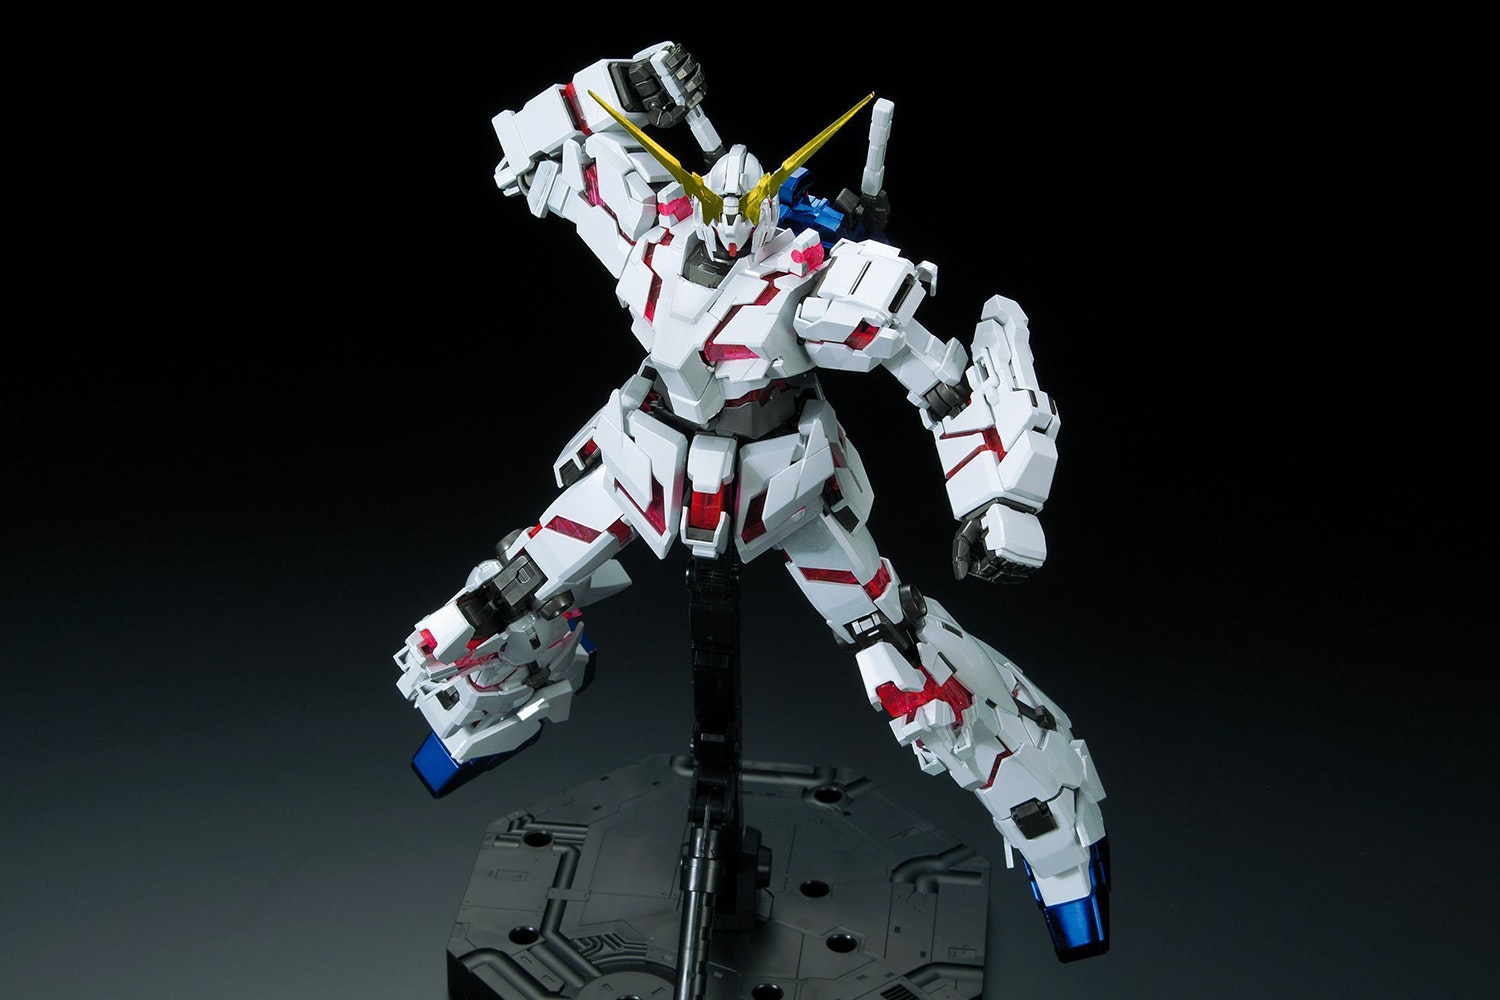 Gundam MG Unicorn Gundam Titanium Finish 1/100th